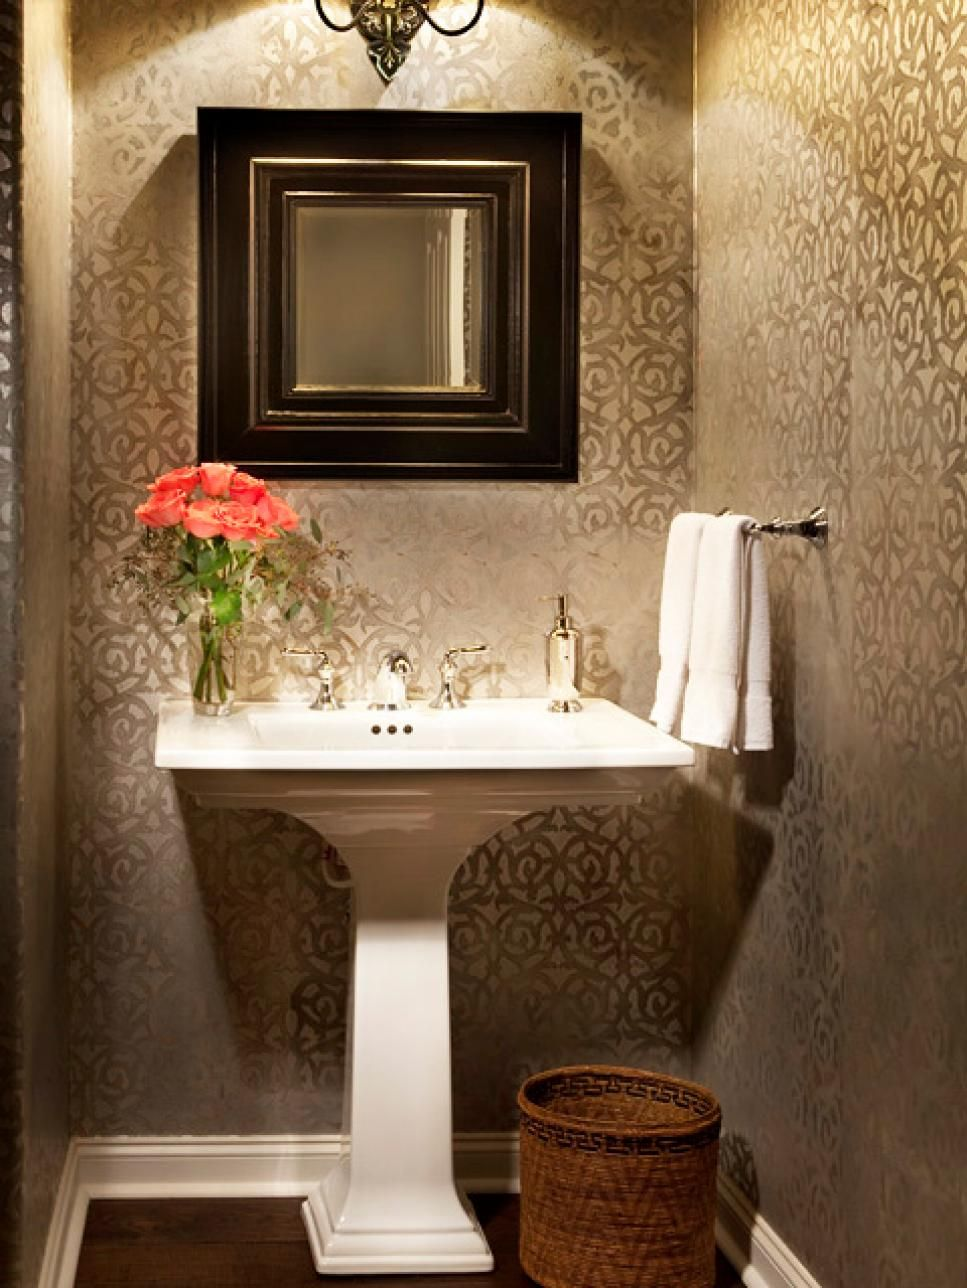 18 Tiny Bathrooms That Pack a Punch | Graphic wallpaper, Small ...